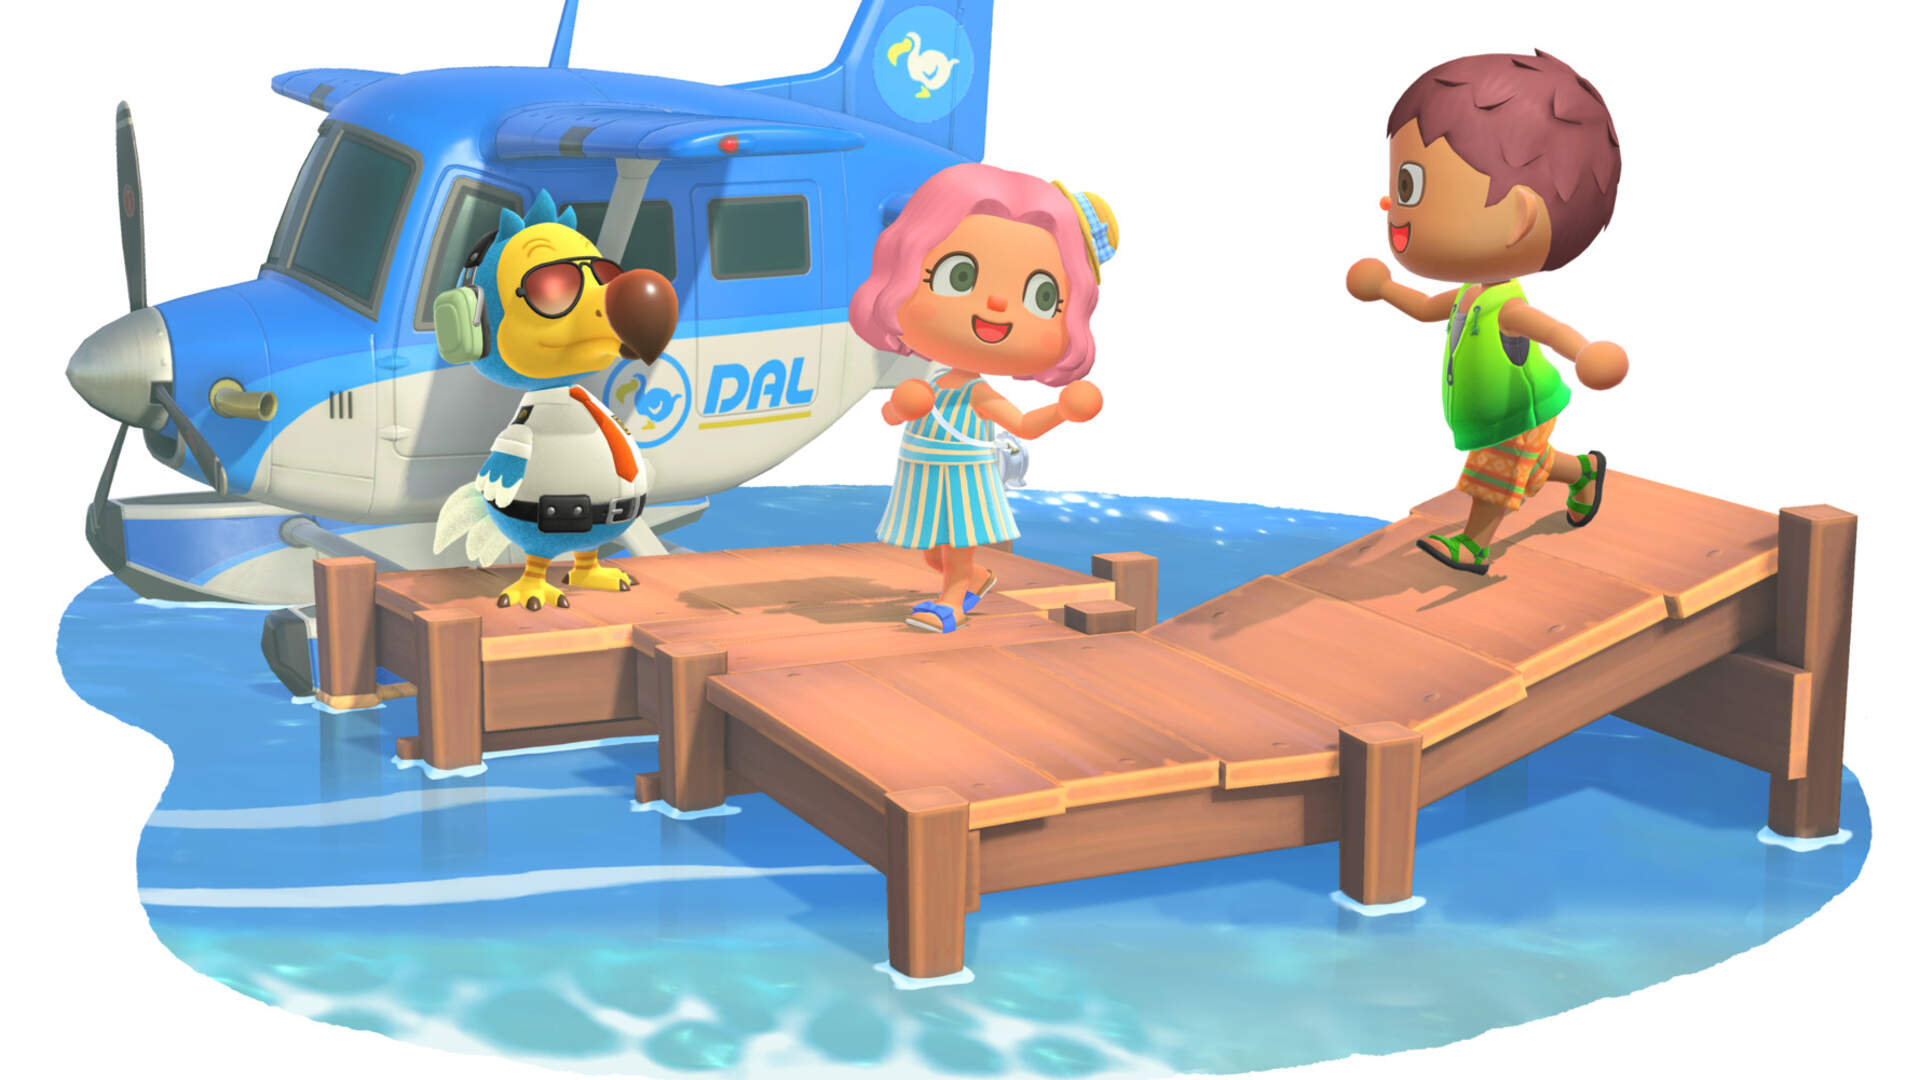 You Can Preload Animal Crossing: New Horizons' Day One Update Before Launch